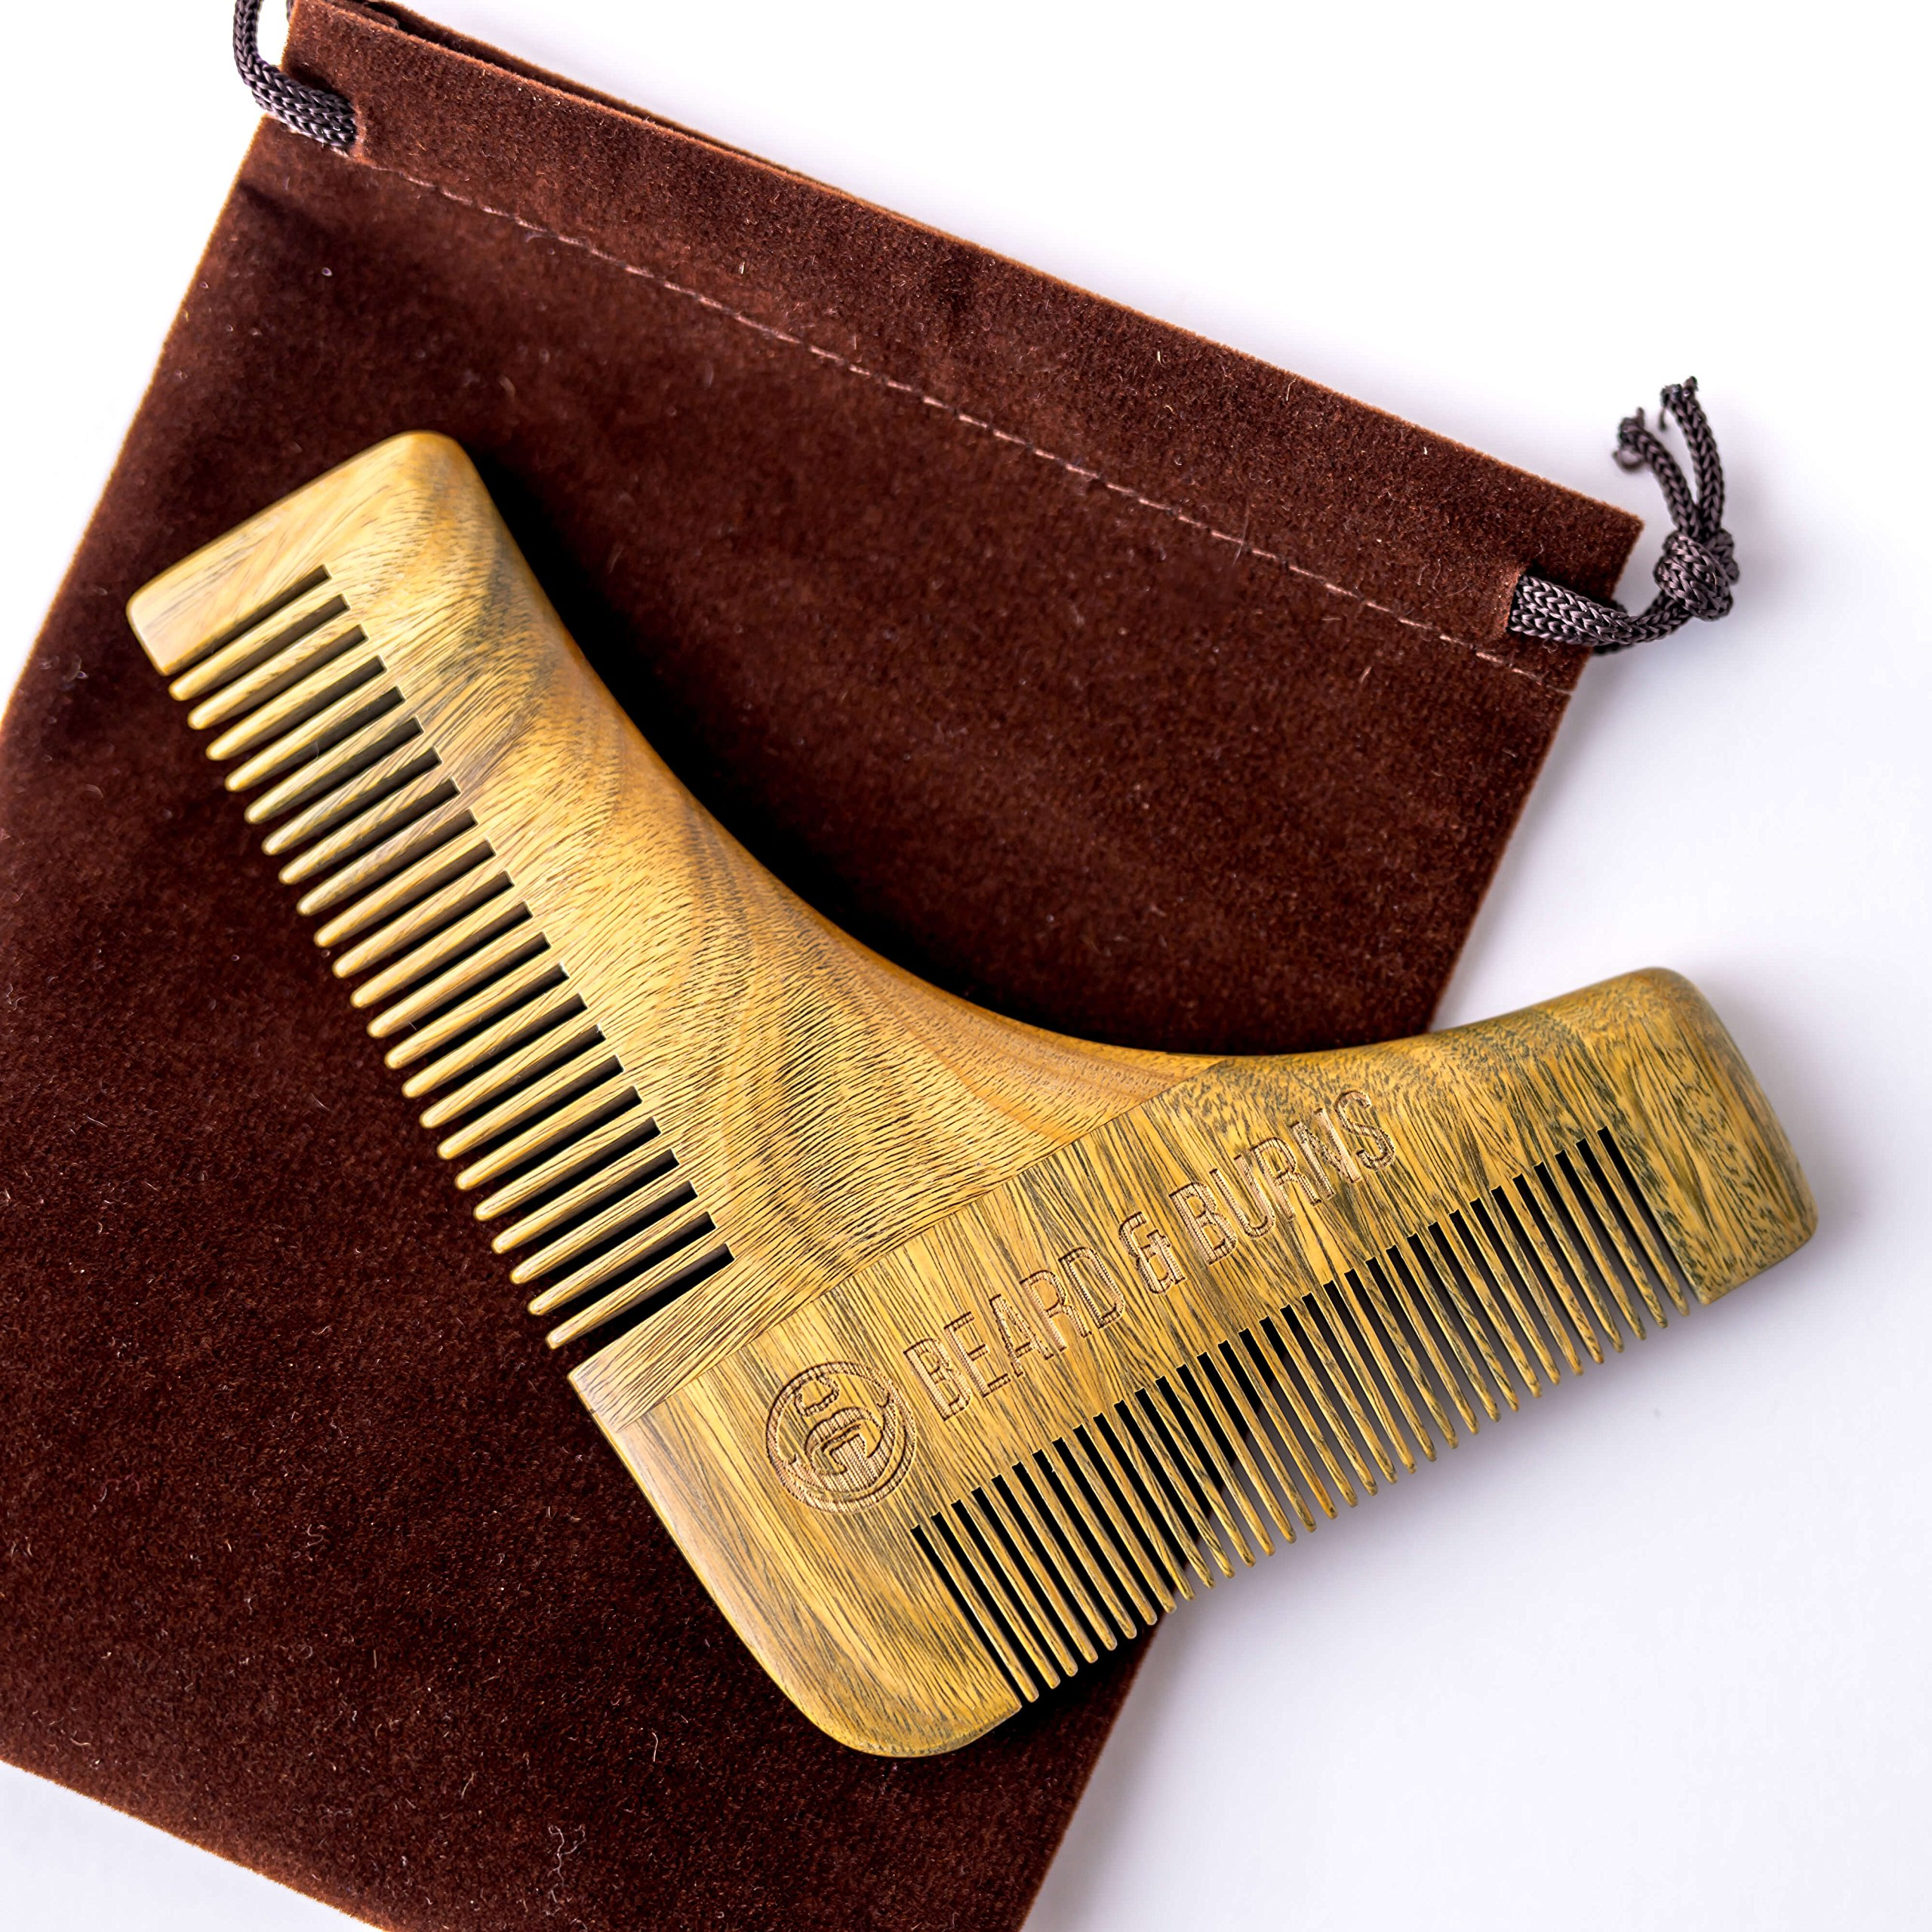 Beard Comb & Shaping Tool by Beard and Burns - 100% Natural Sandalwood Comb - Perfect with Beard Oil & Balms - Anti Static & Snag Free - Great Addition to Beard Kit